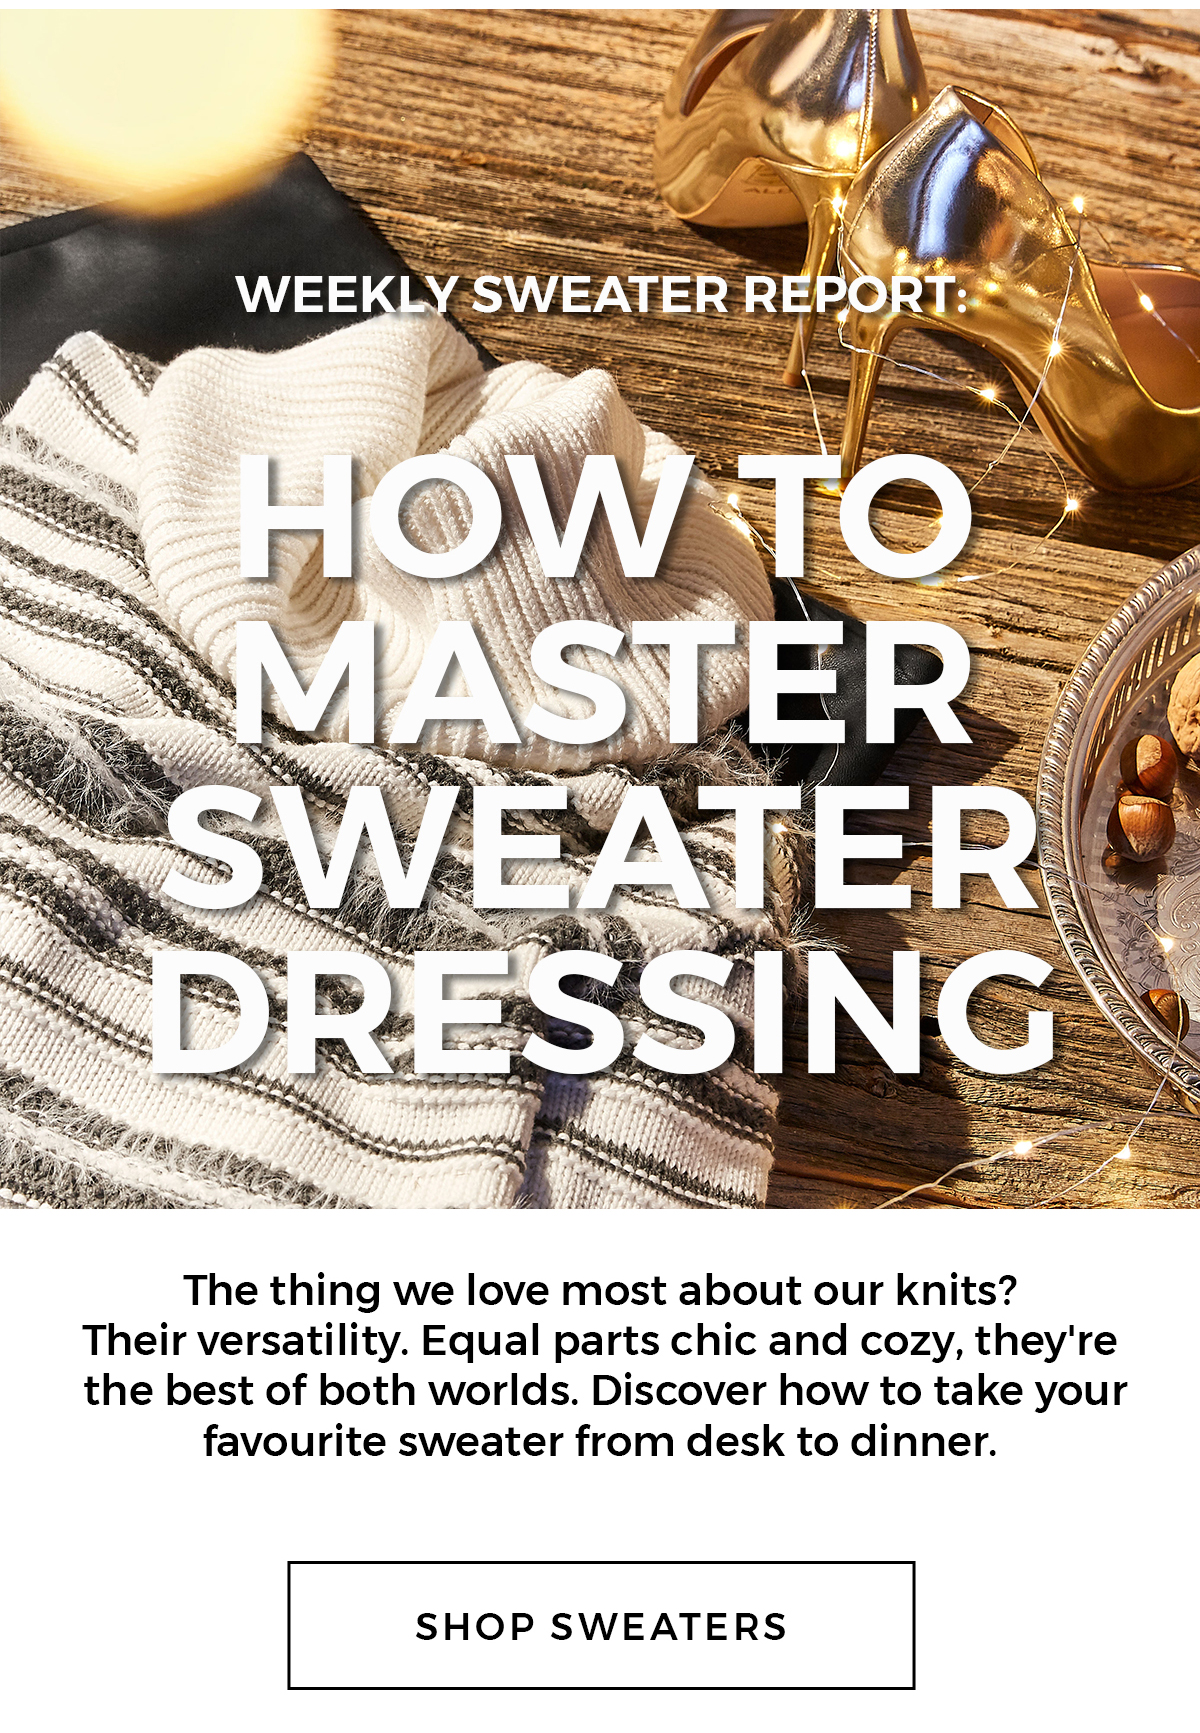 Your weekly Sweater Report  How to master sweater dressing The thing we love most about our knits? Their versatility.  Equal parts chic and cozy, they're the best of both worlds. Discover how to take your favourite sweater from desk to dinner. Shop sweaters